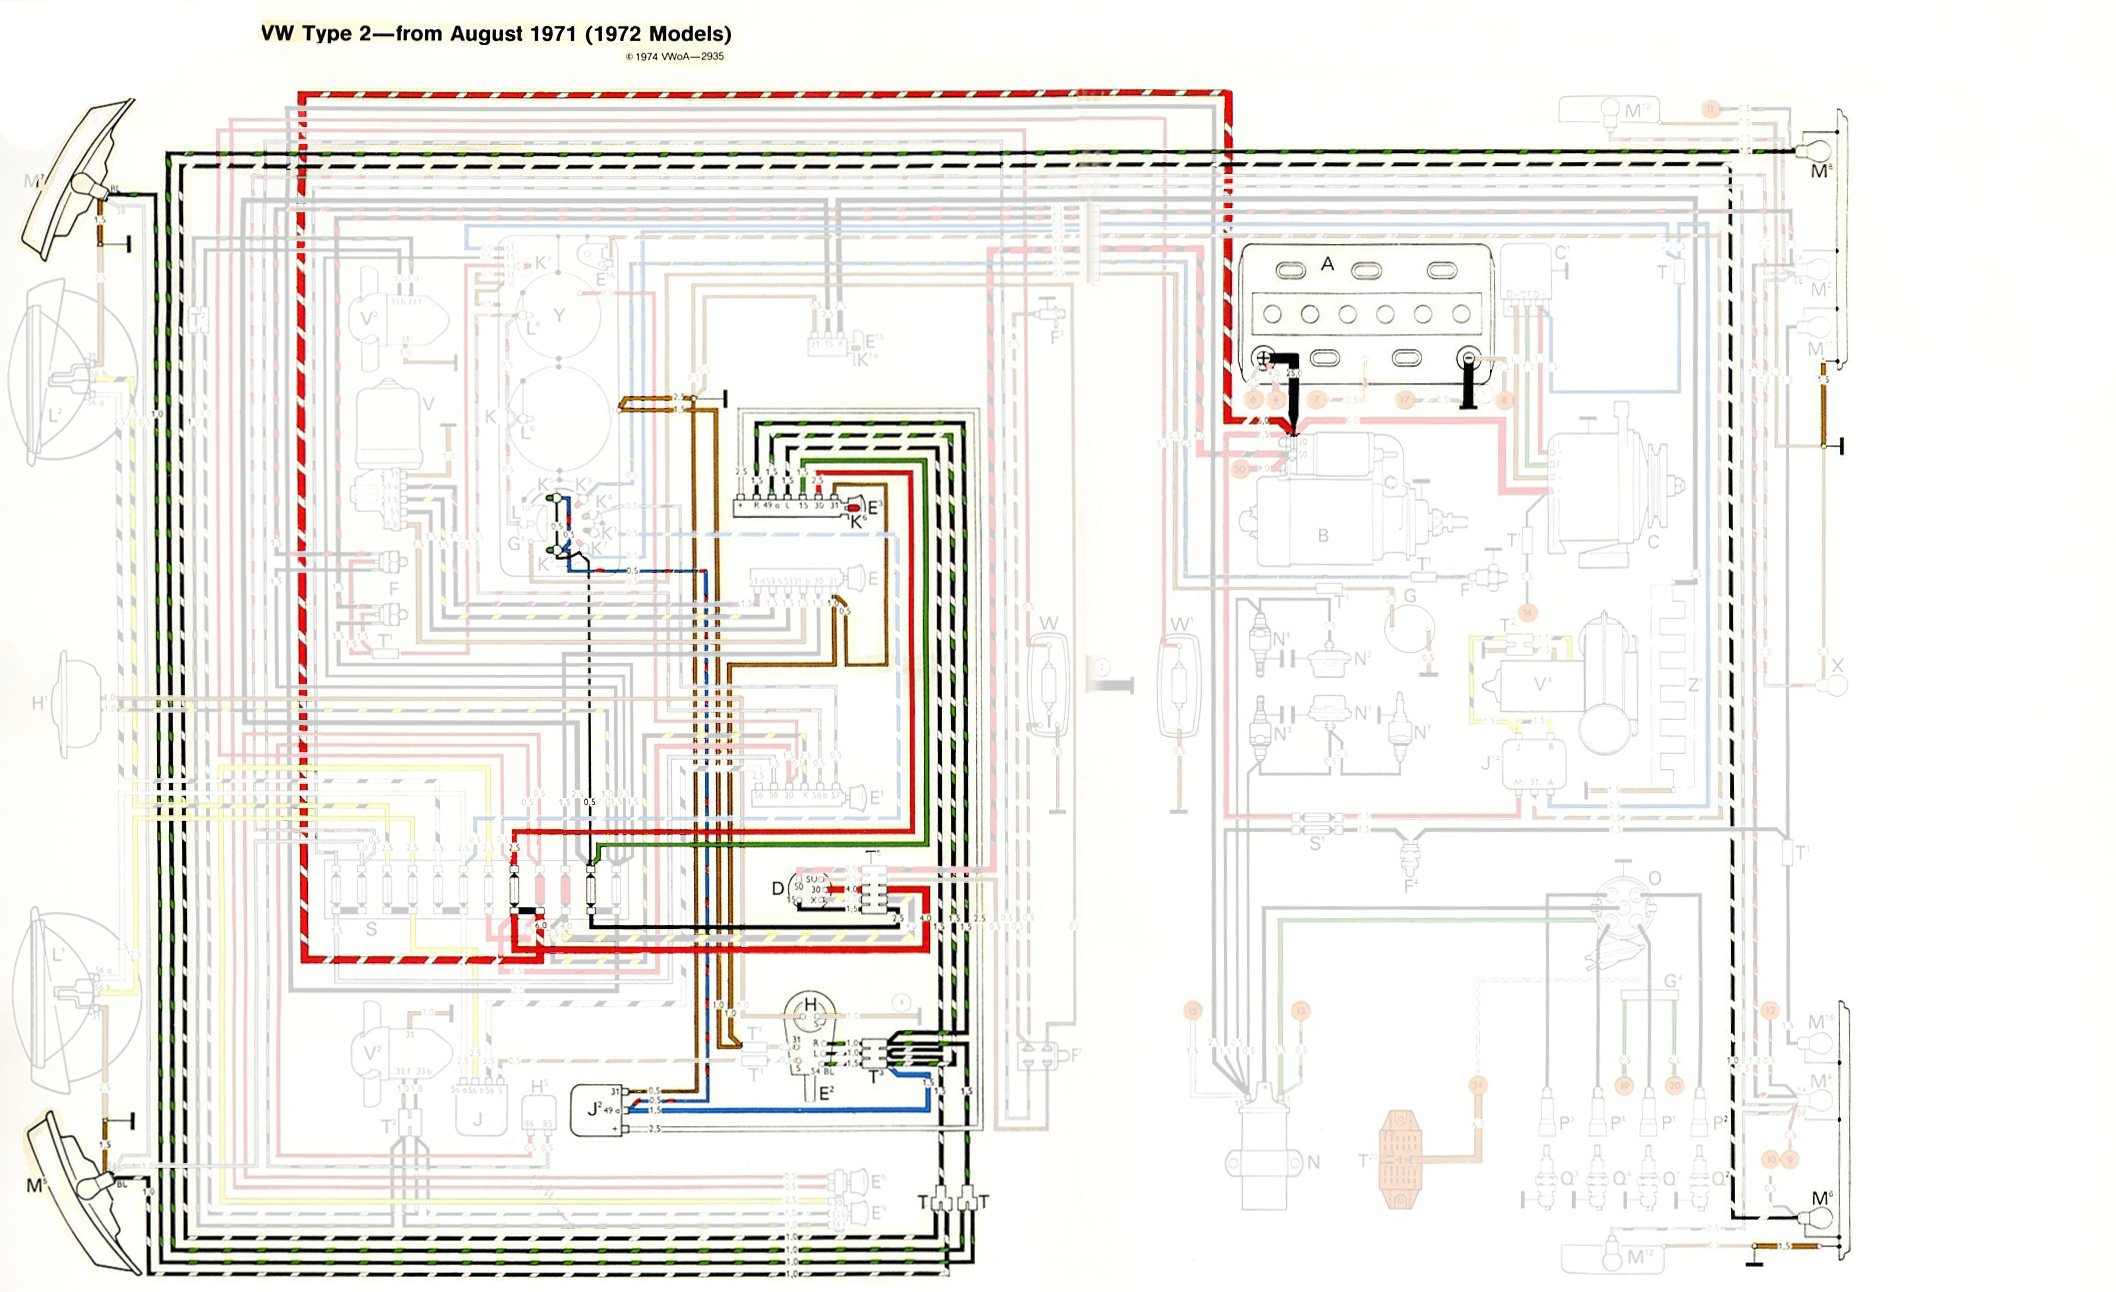 1972 Chevy Turn Signal Wiring Schematic Diagrams Corvette Interior Light Diagram Get Free Basic Ford